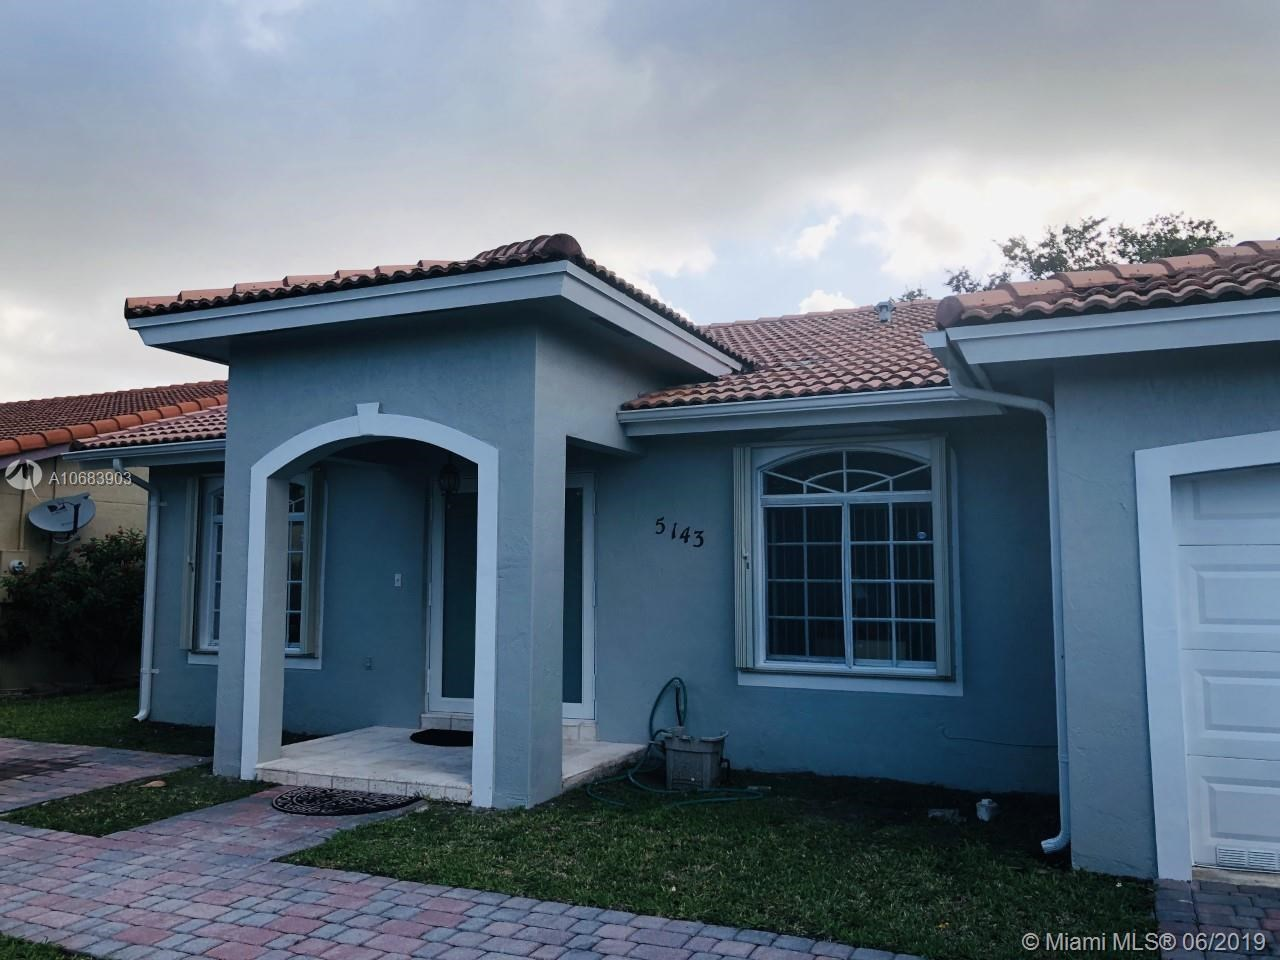 5143 SW 157 Ct, Miami, FL 33185